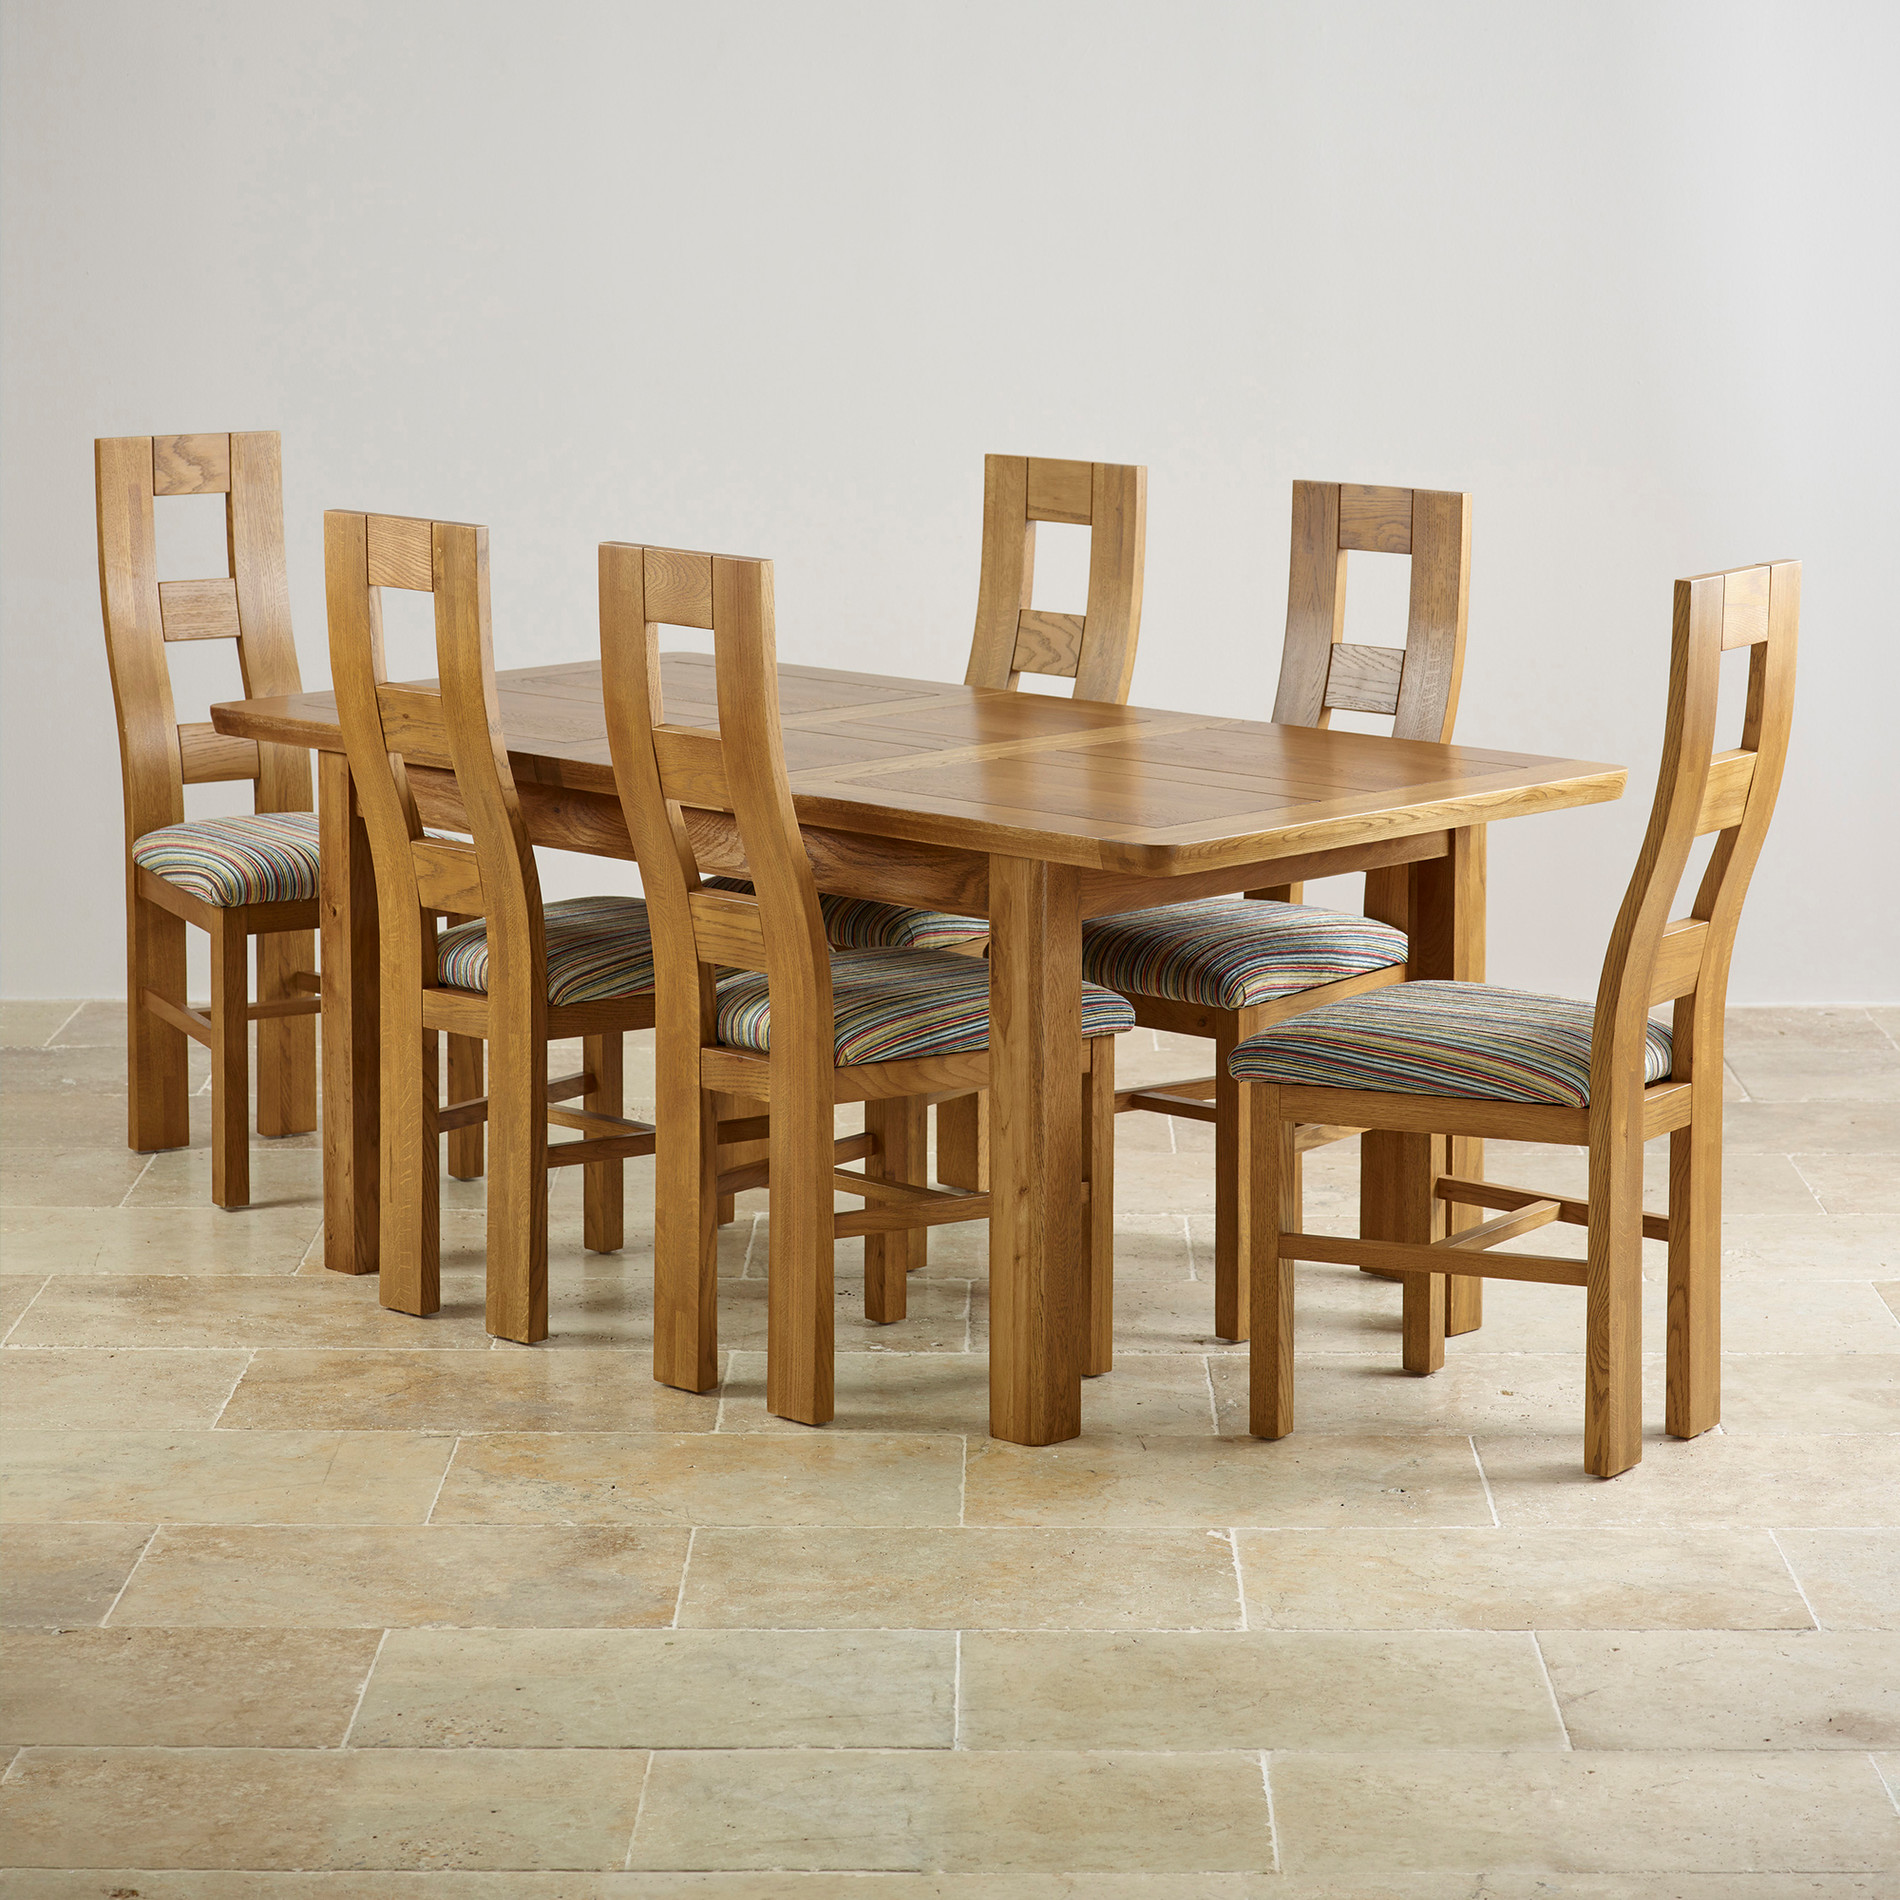 Oak Dining Room Furniture: Orrick Extending Dining Set In Rustic Oak: Table + 6 Beige